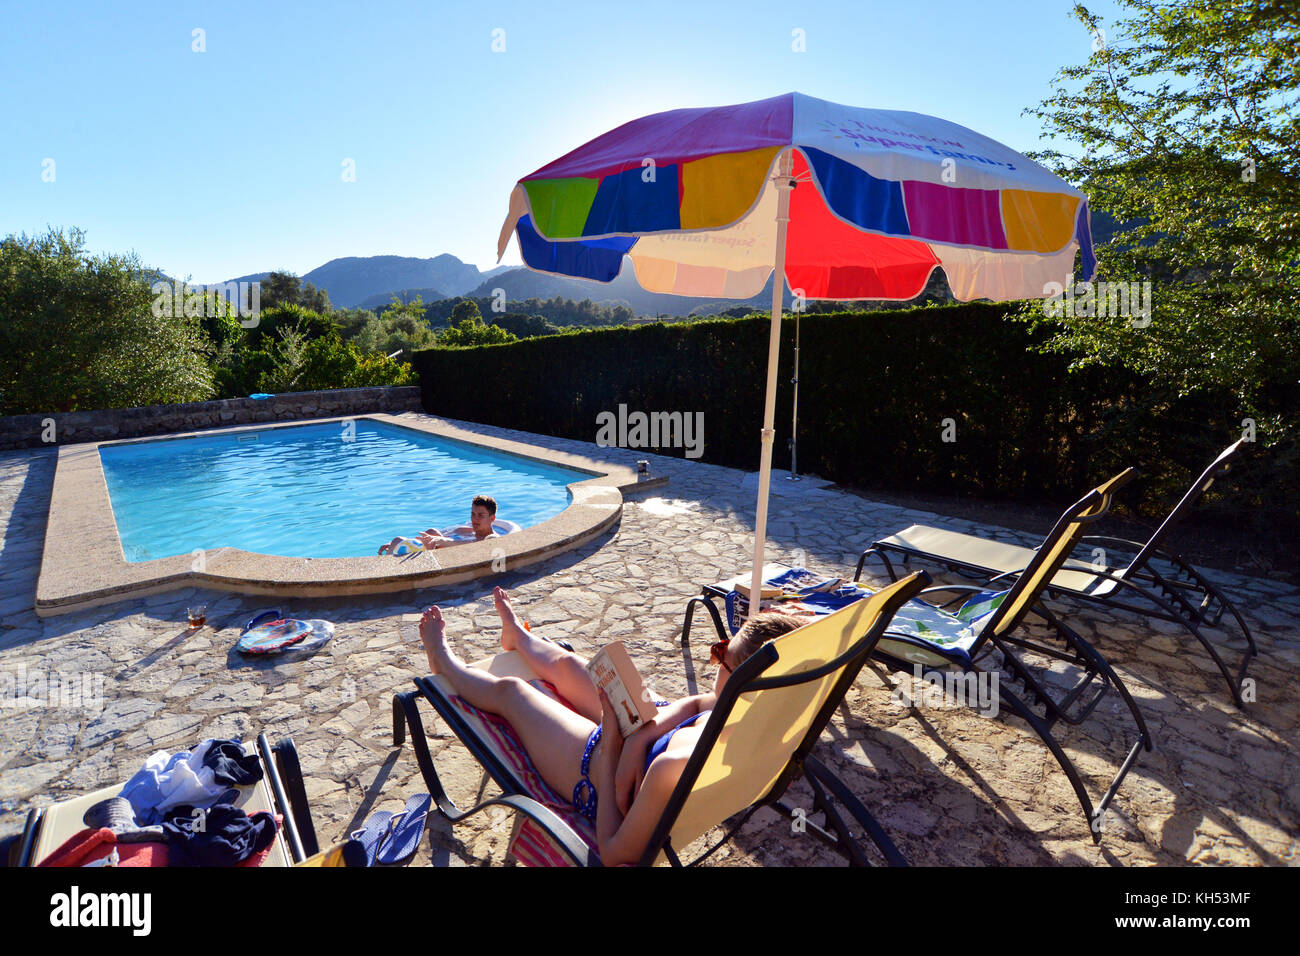 Ferienhaus Mit Pool In Spanien Villa With Pool Stockfotos And Villa With Pool Bilder Alamy